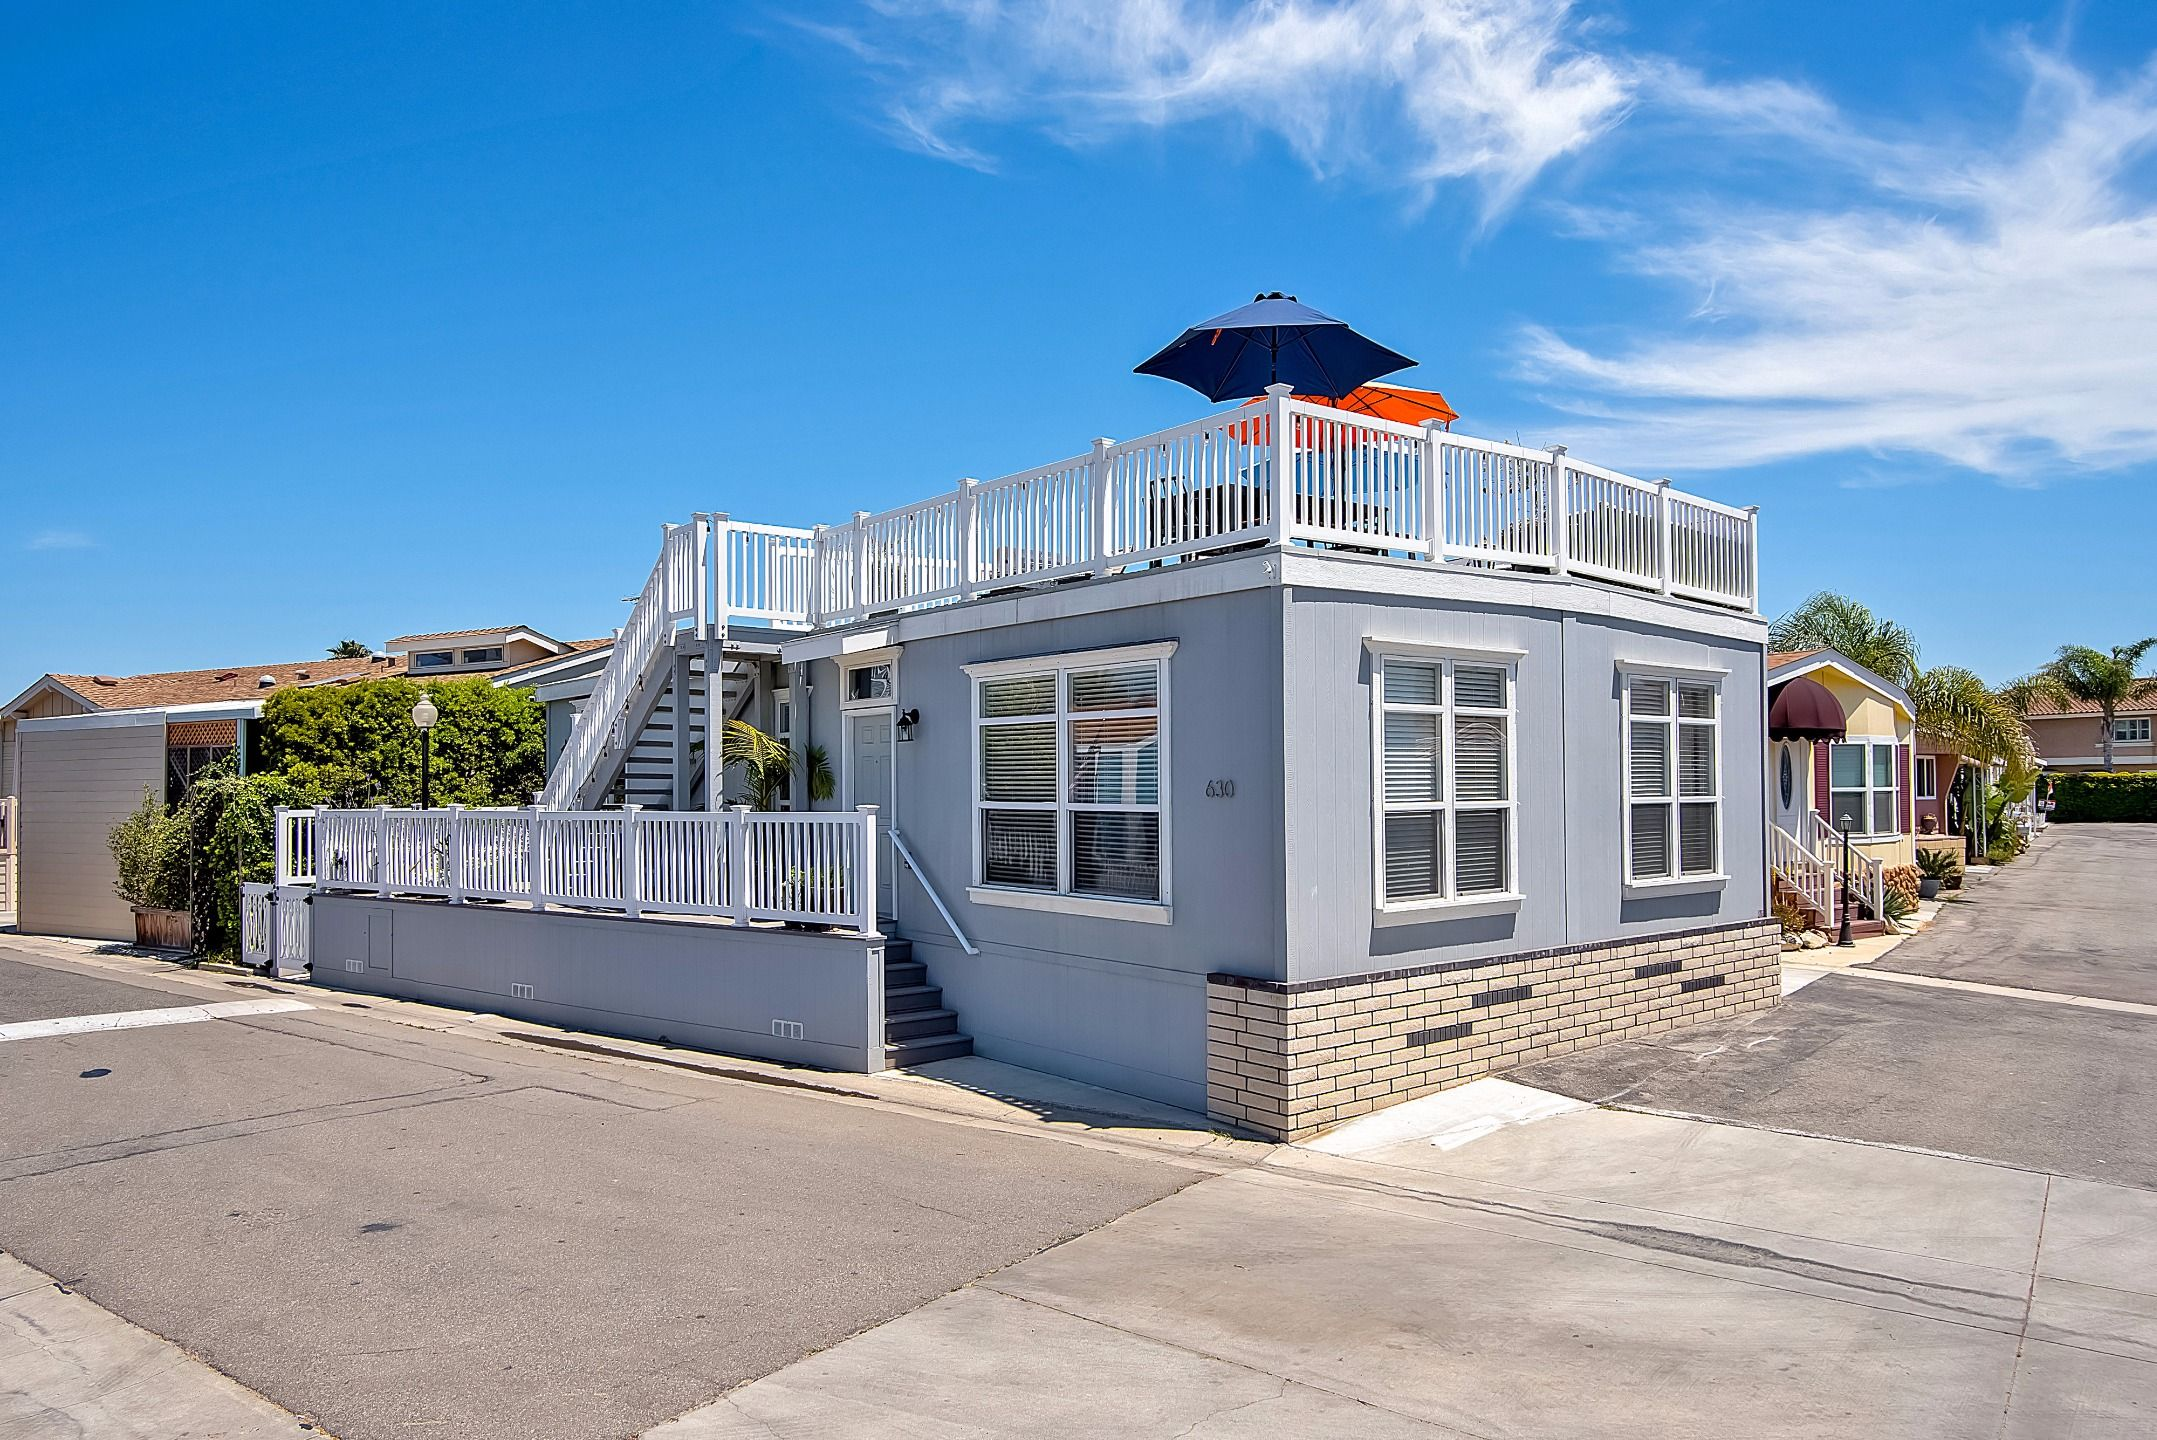 Fleetwood Mobile Home For Sale In Huntington Beach Ca 92648 Beach Cottages Cottage Cottage Design